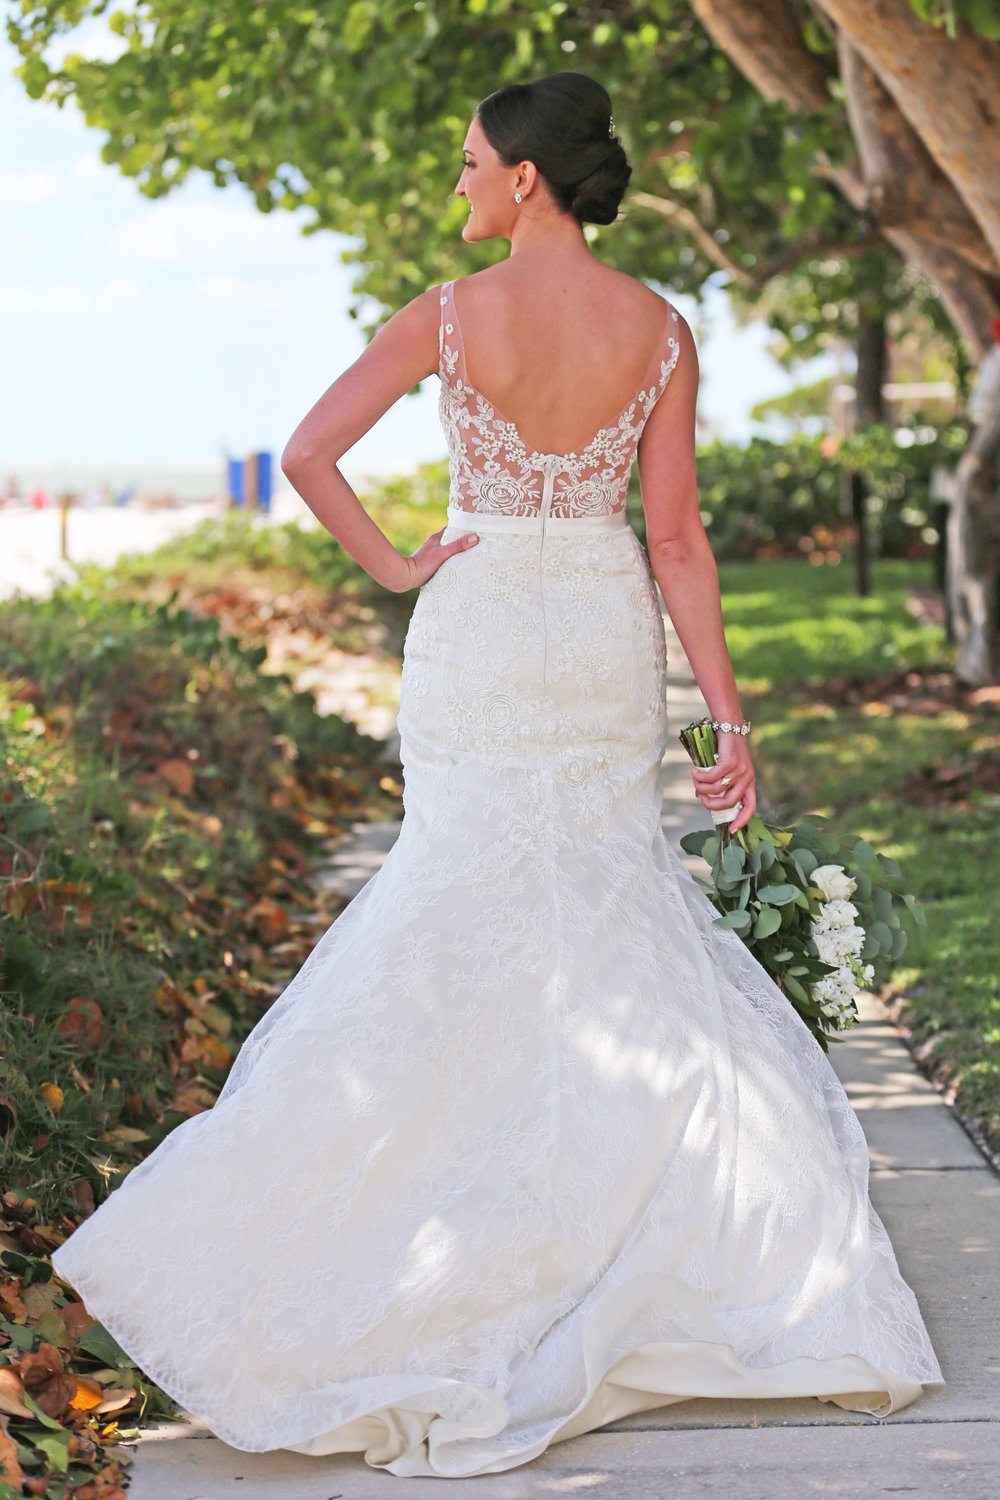 The lace illusion back was our favorite part about the wedding gown!